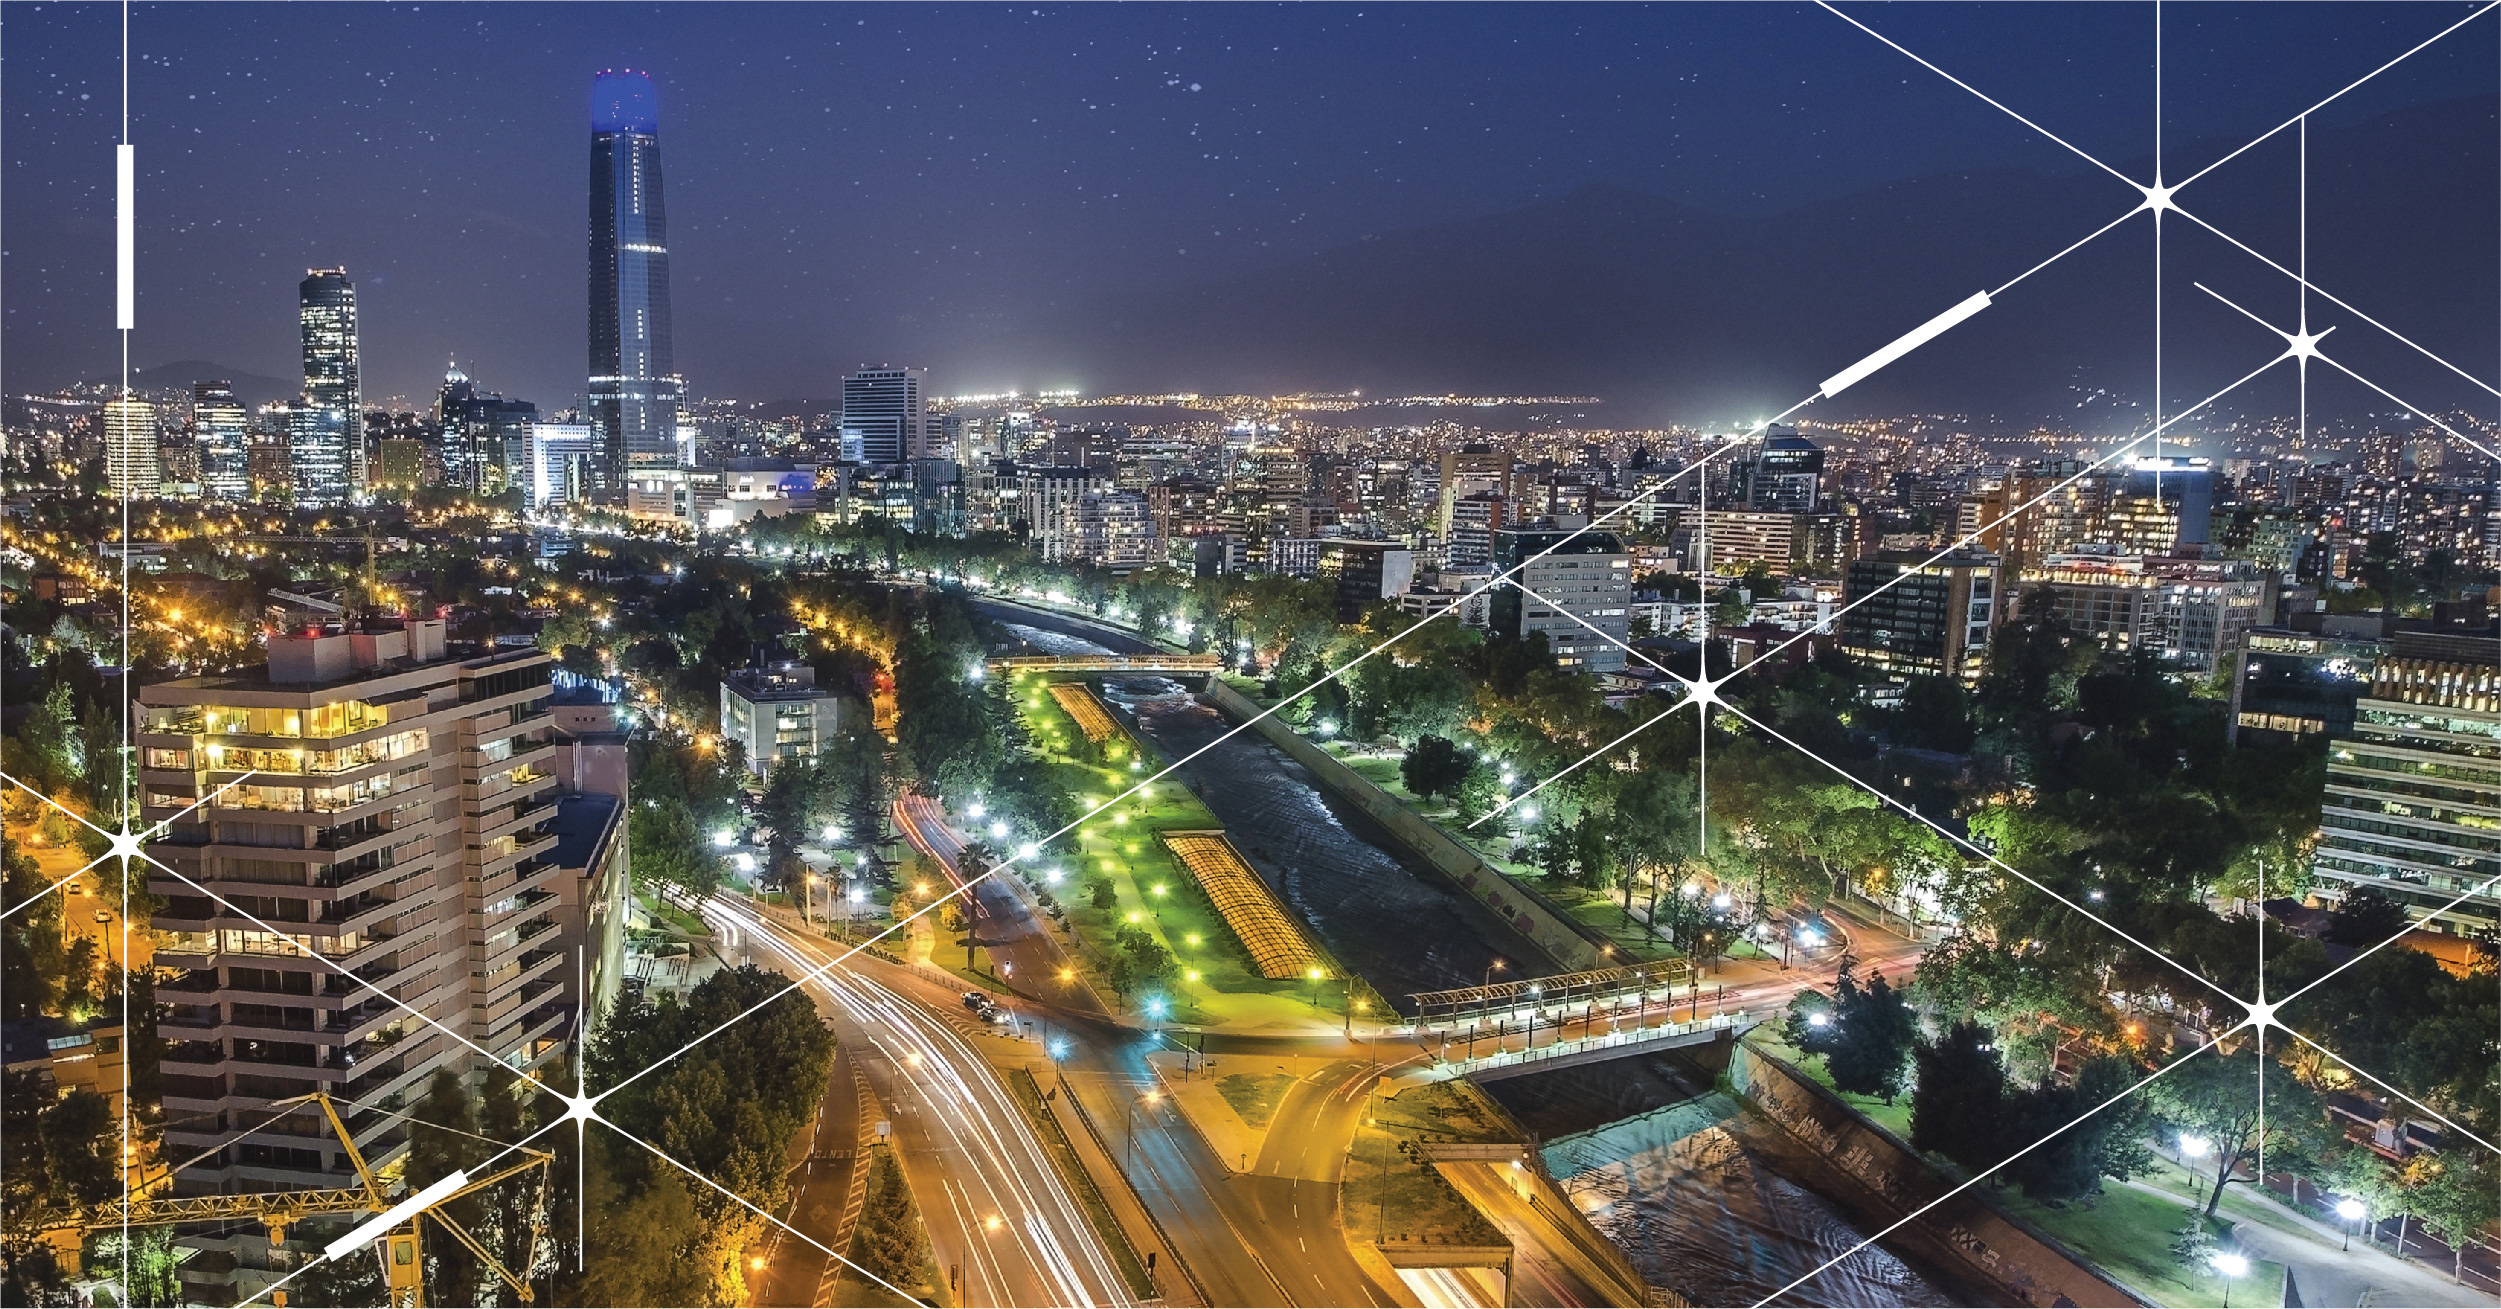 Using the inteliLIGHT solution, ENGIE takes on a 15 year commitment to manage smart street lighting in Chile's capital city, Santiago